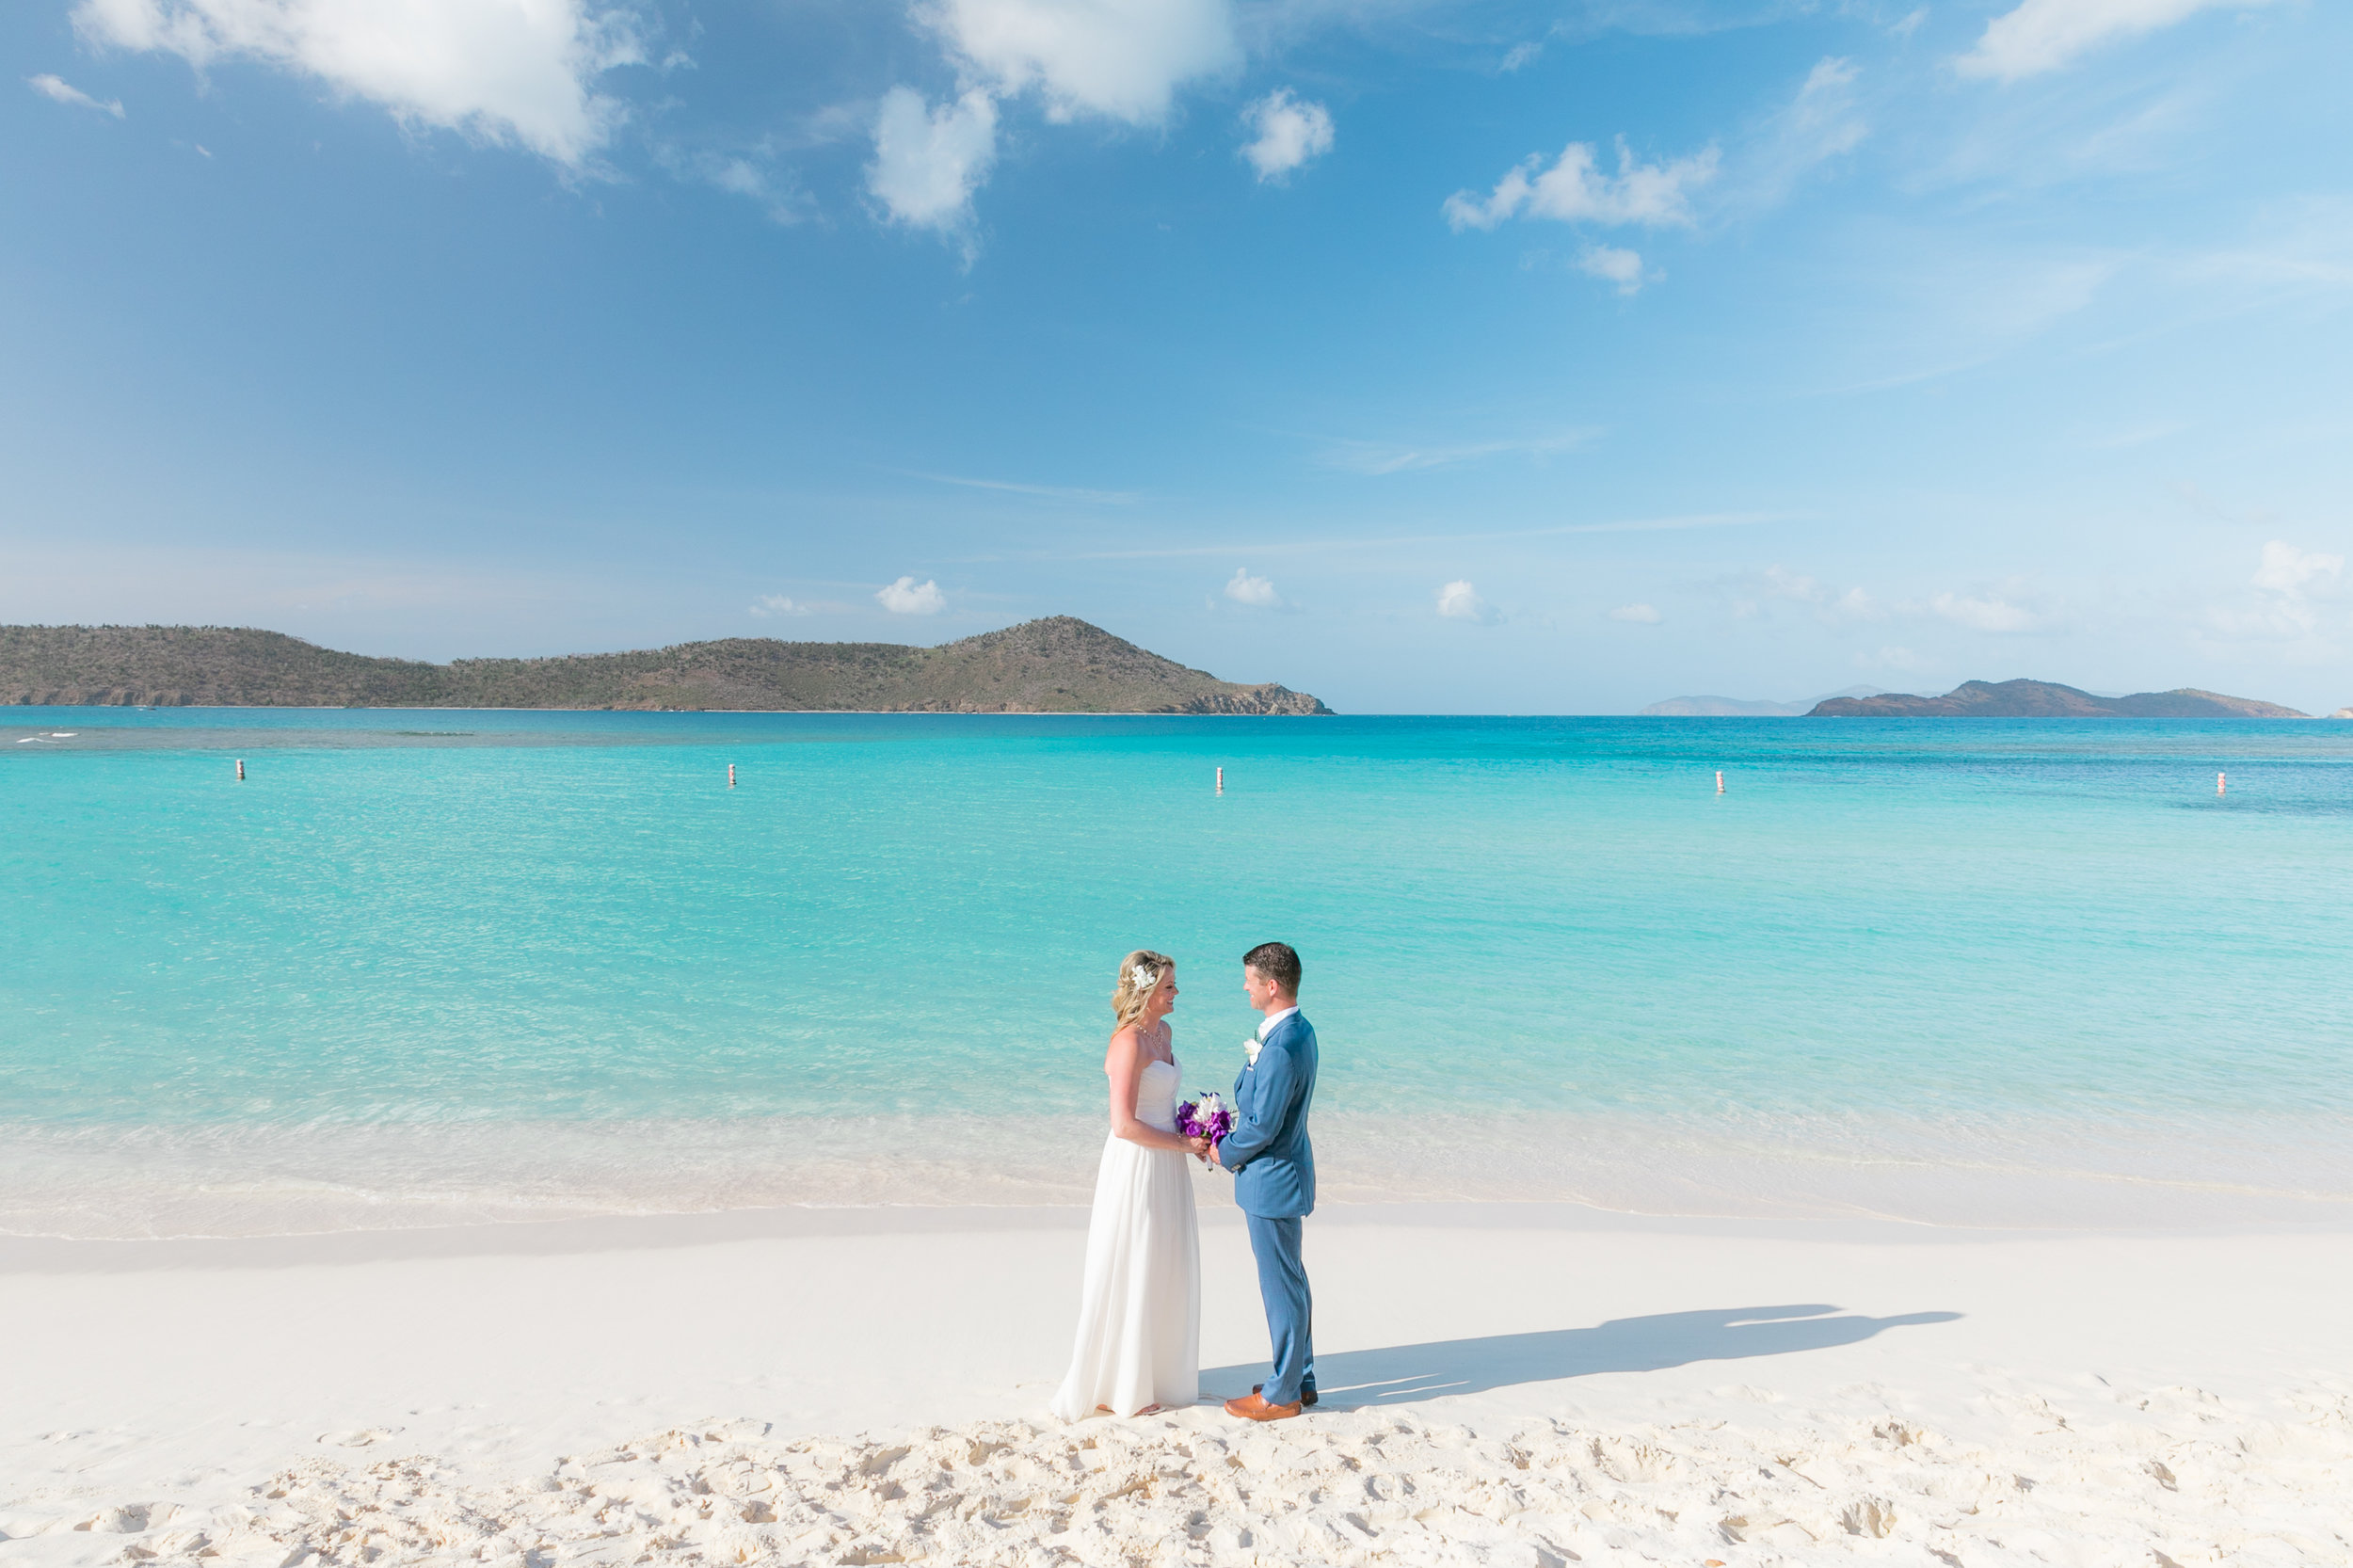 lindquist-beach-st-thomas-wedding-photography